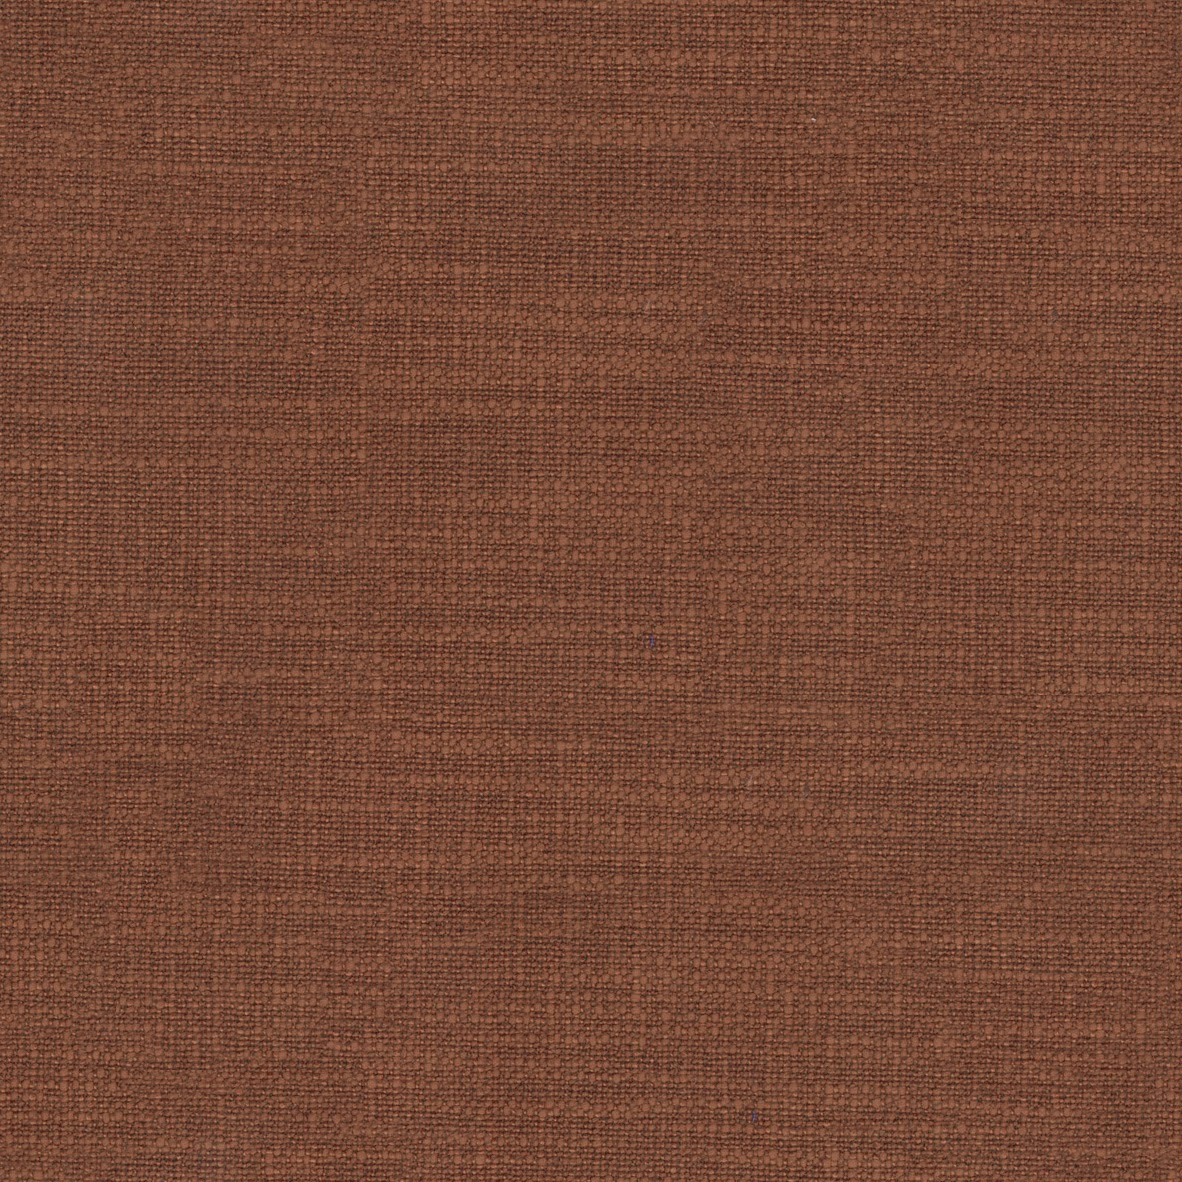 Seamless Brown Fabric Texture Maps Texturise Free Interiors Inside Ideas Interiors design about Everything [magnanprojects.com]